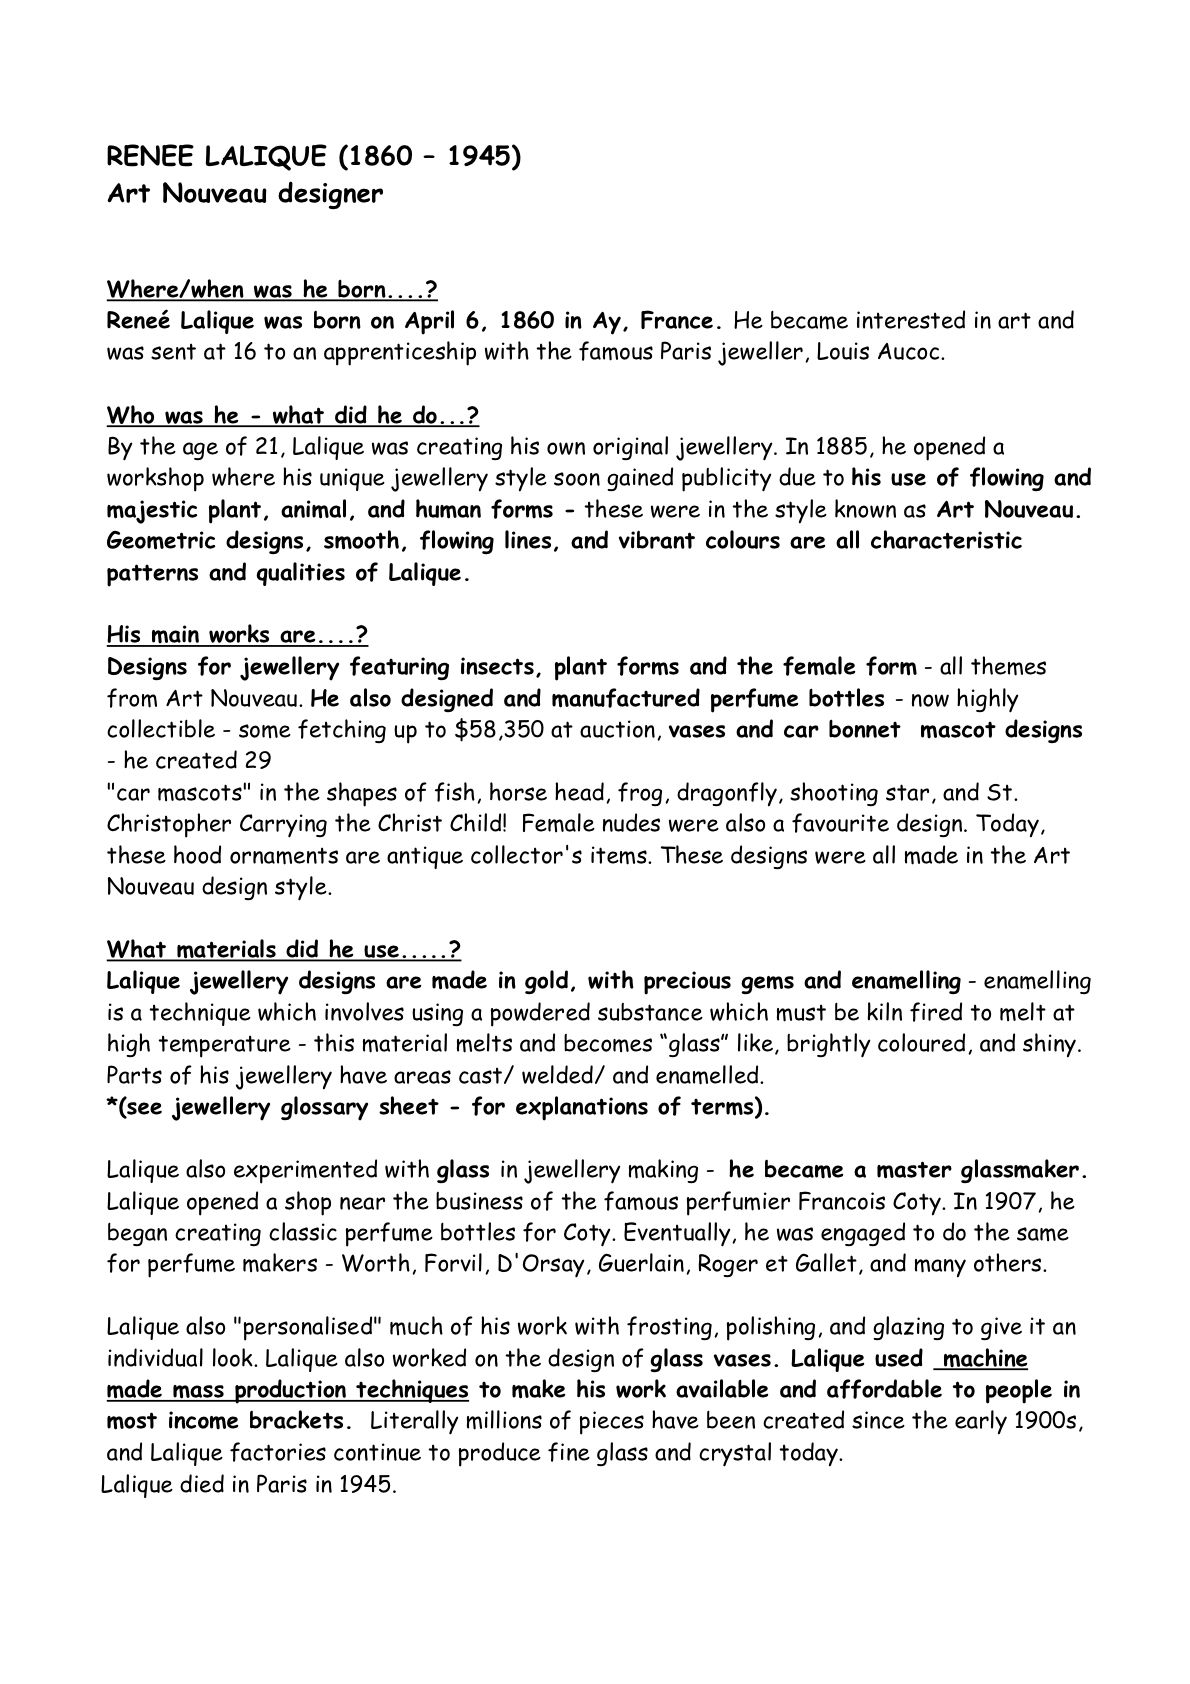 Reflective Essay On High School  Essays On Business Ethics also English Essay Books Lalique Biography  Vintage Jewelery  Art Nouveau Design  How To Write A Proposal For An Essay